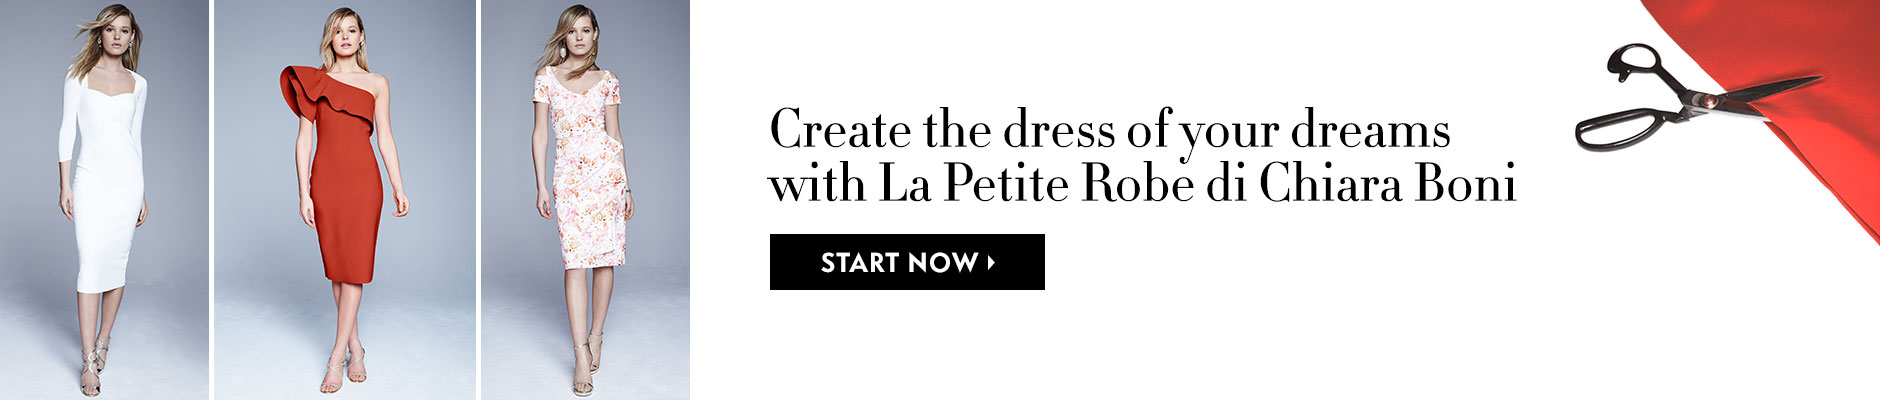 Create the dress of your dreams with La Petite Robe di Chiara Boni - Start now